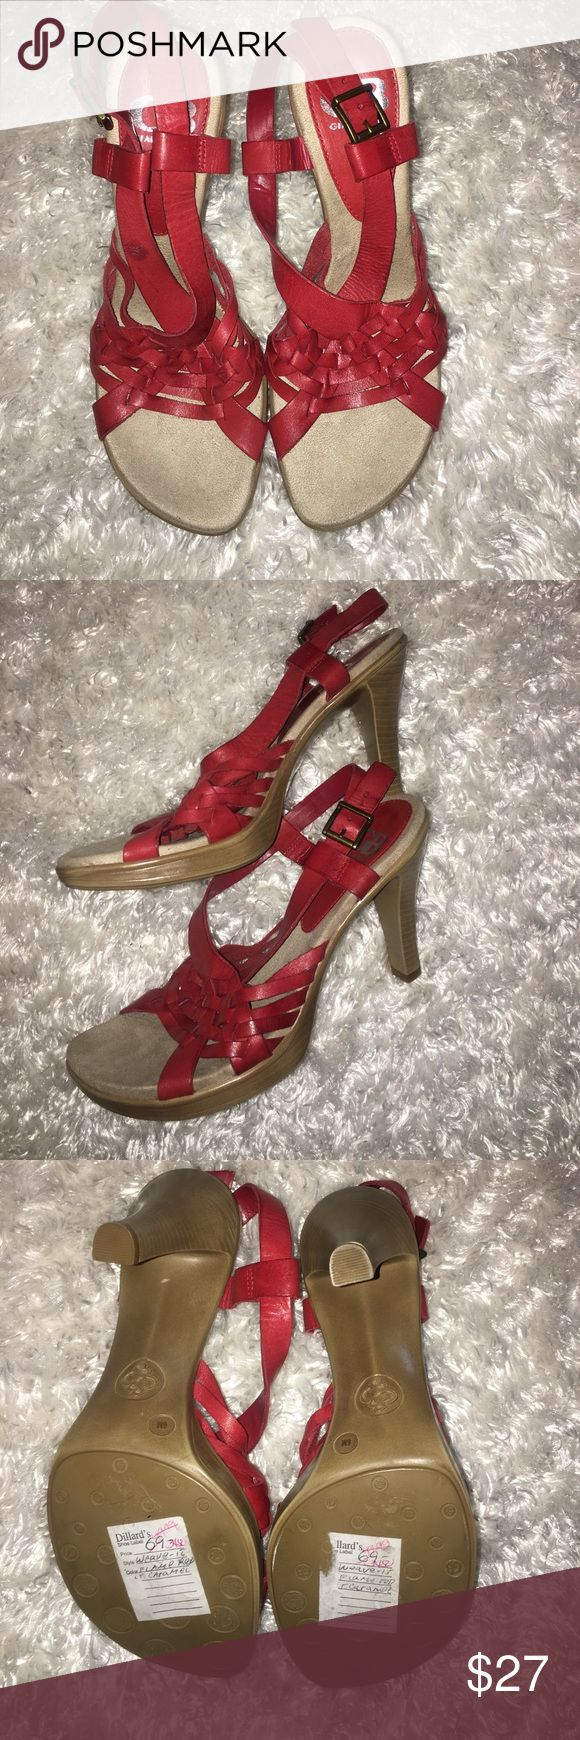 NWOT!! Gianna Bini Strappy Sandals/Heels NWOT!! Gianna Bini Strappy Sandals/Heels. Never worn. 6M Gianni Bini Shoes Sandals